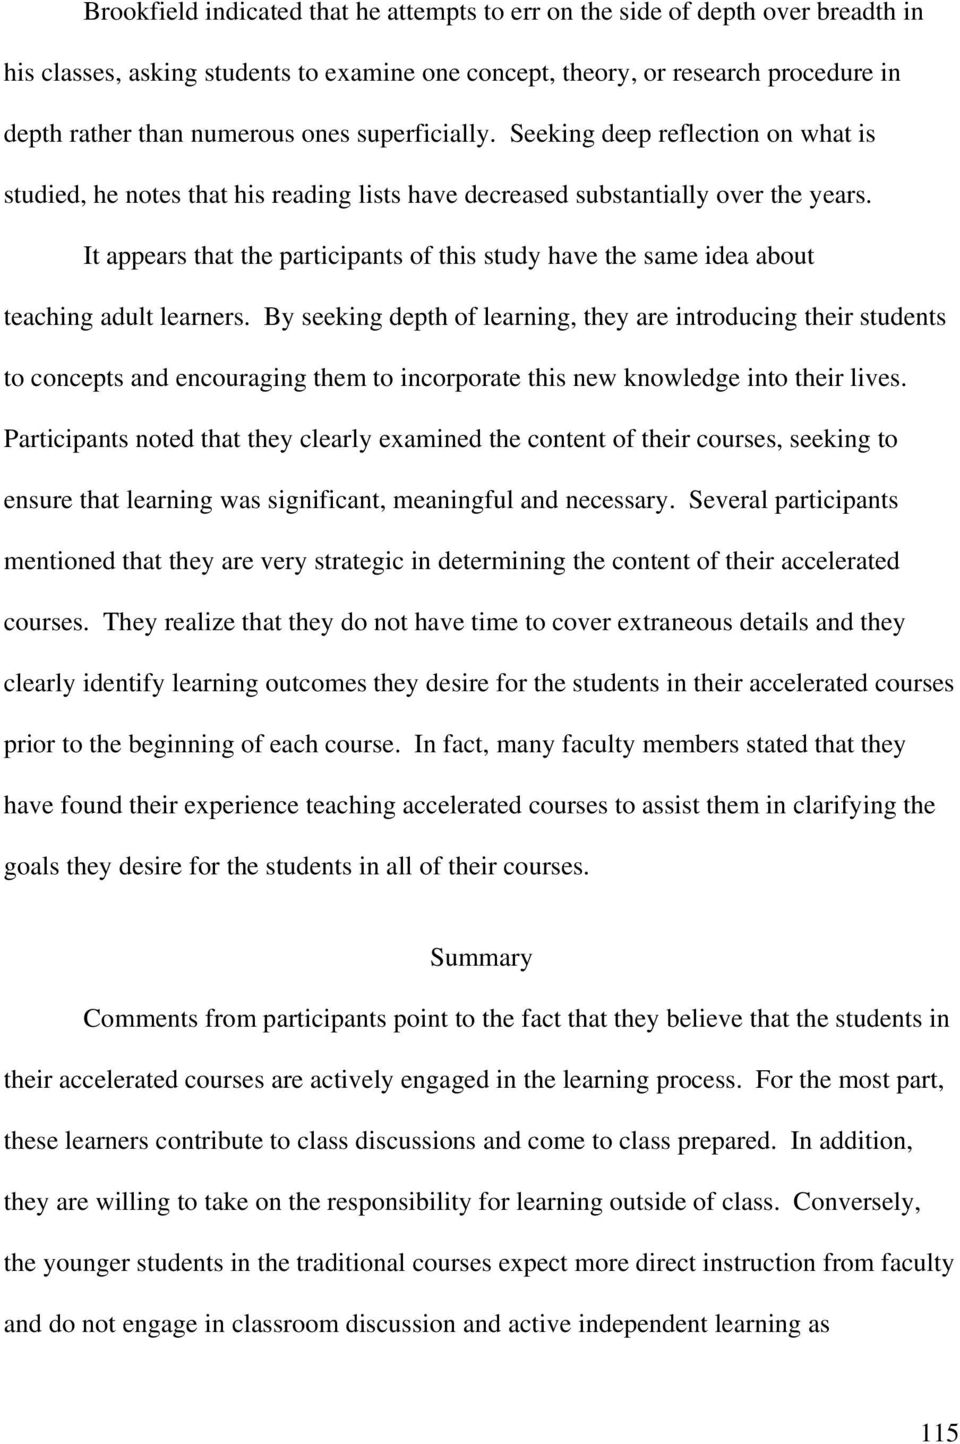 It appears that the participants of this study have the same idea about teaching adult learners.